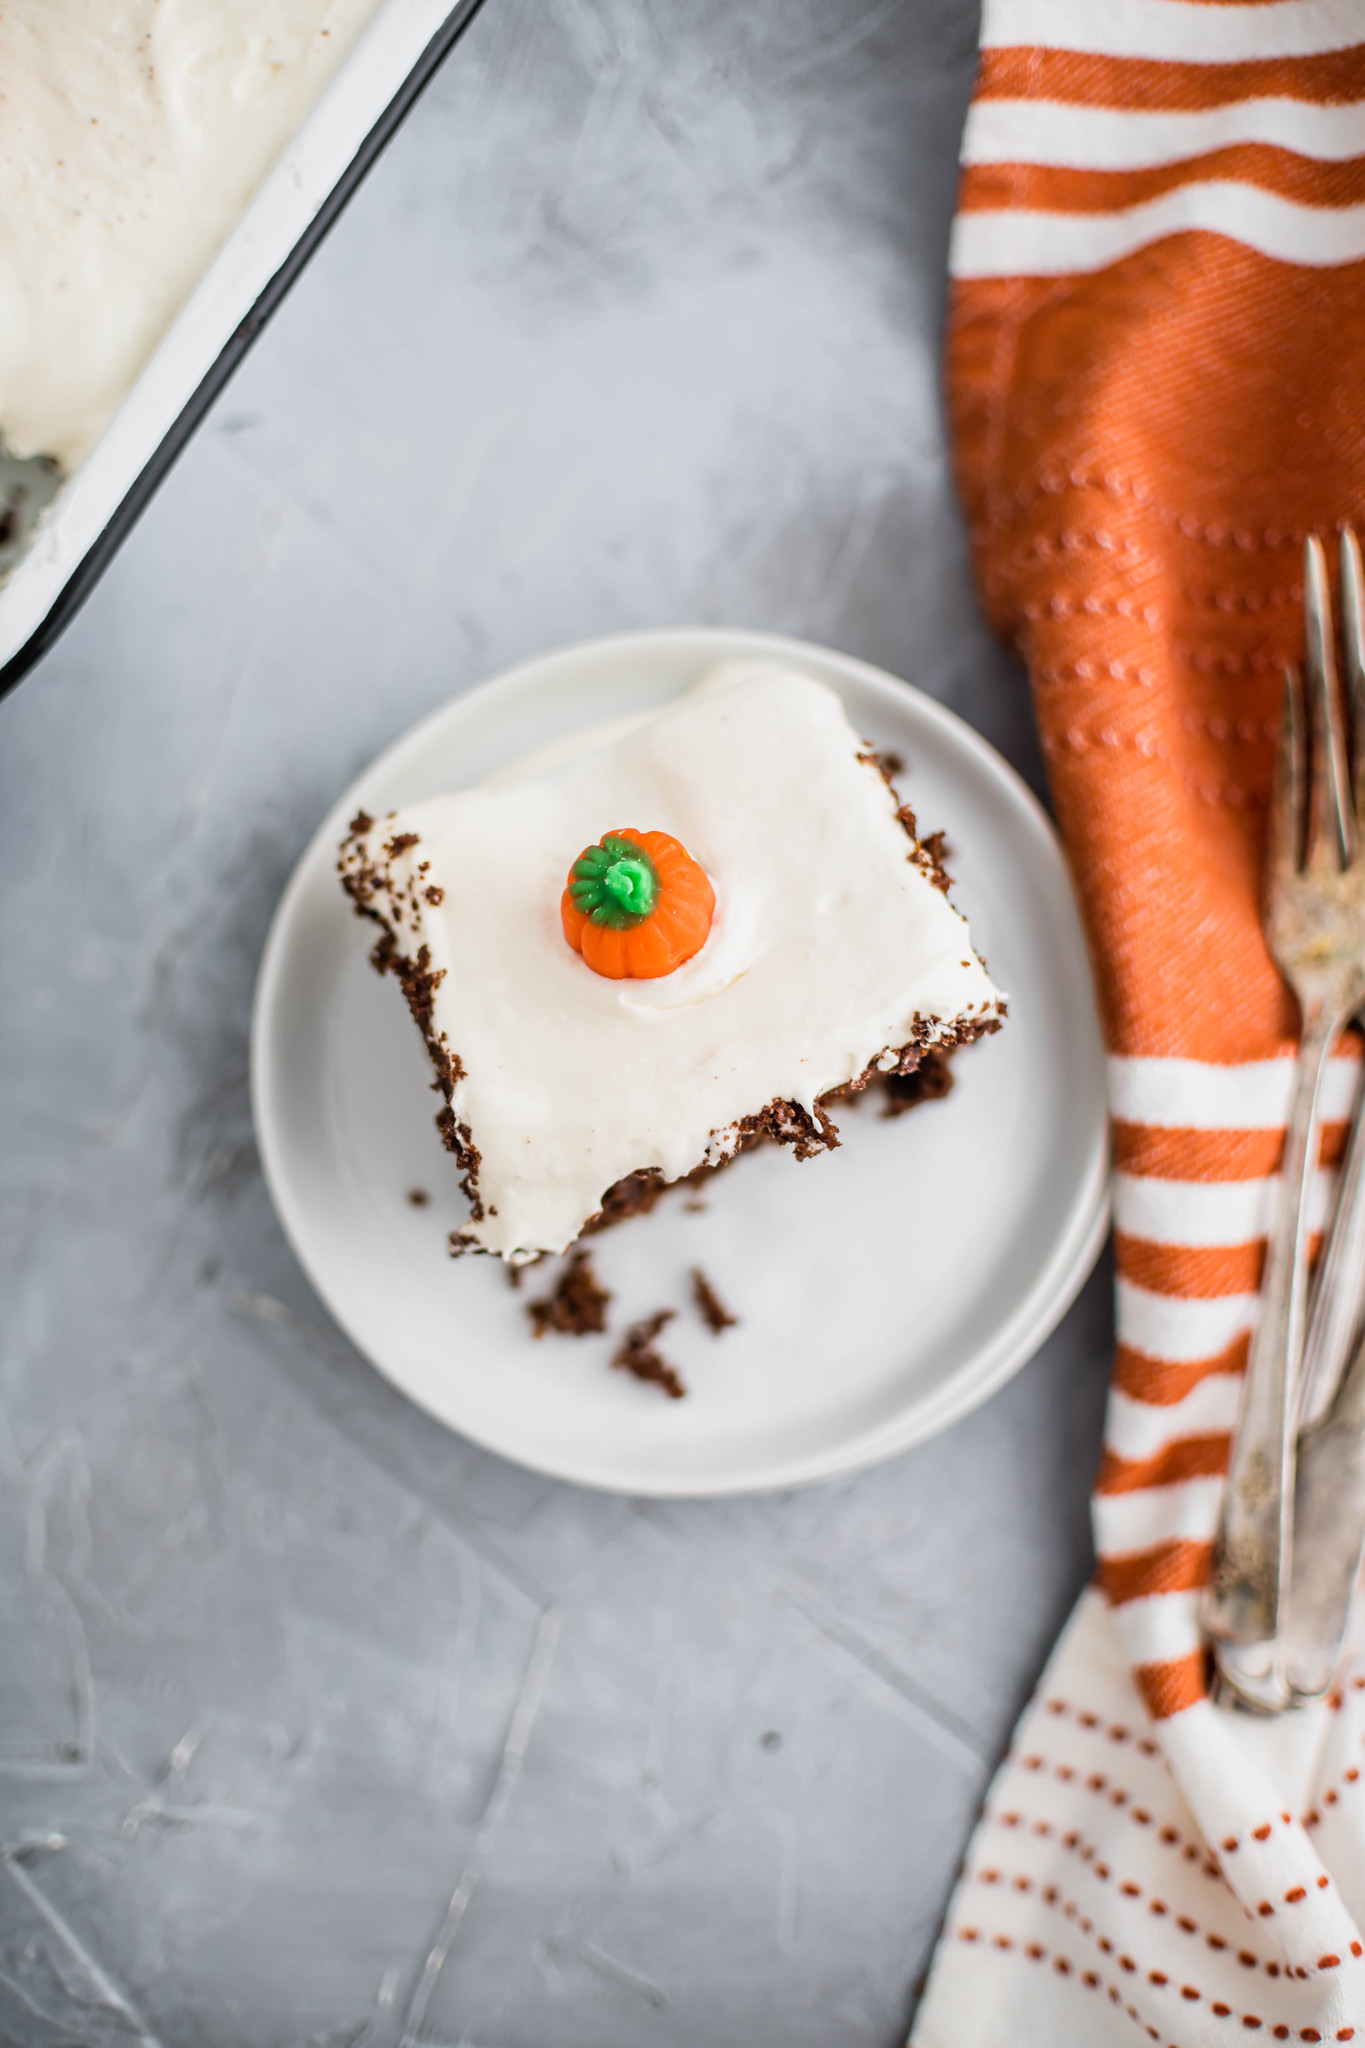 Slice of chocolate pumpkin cake on a small white round plate. Orange and cream striped cloth napkin and fork to the right of the plate.